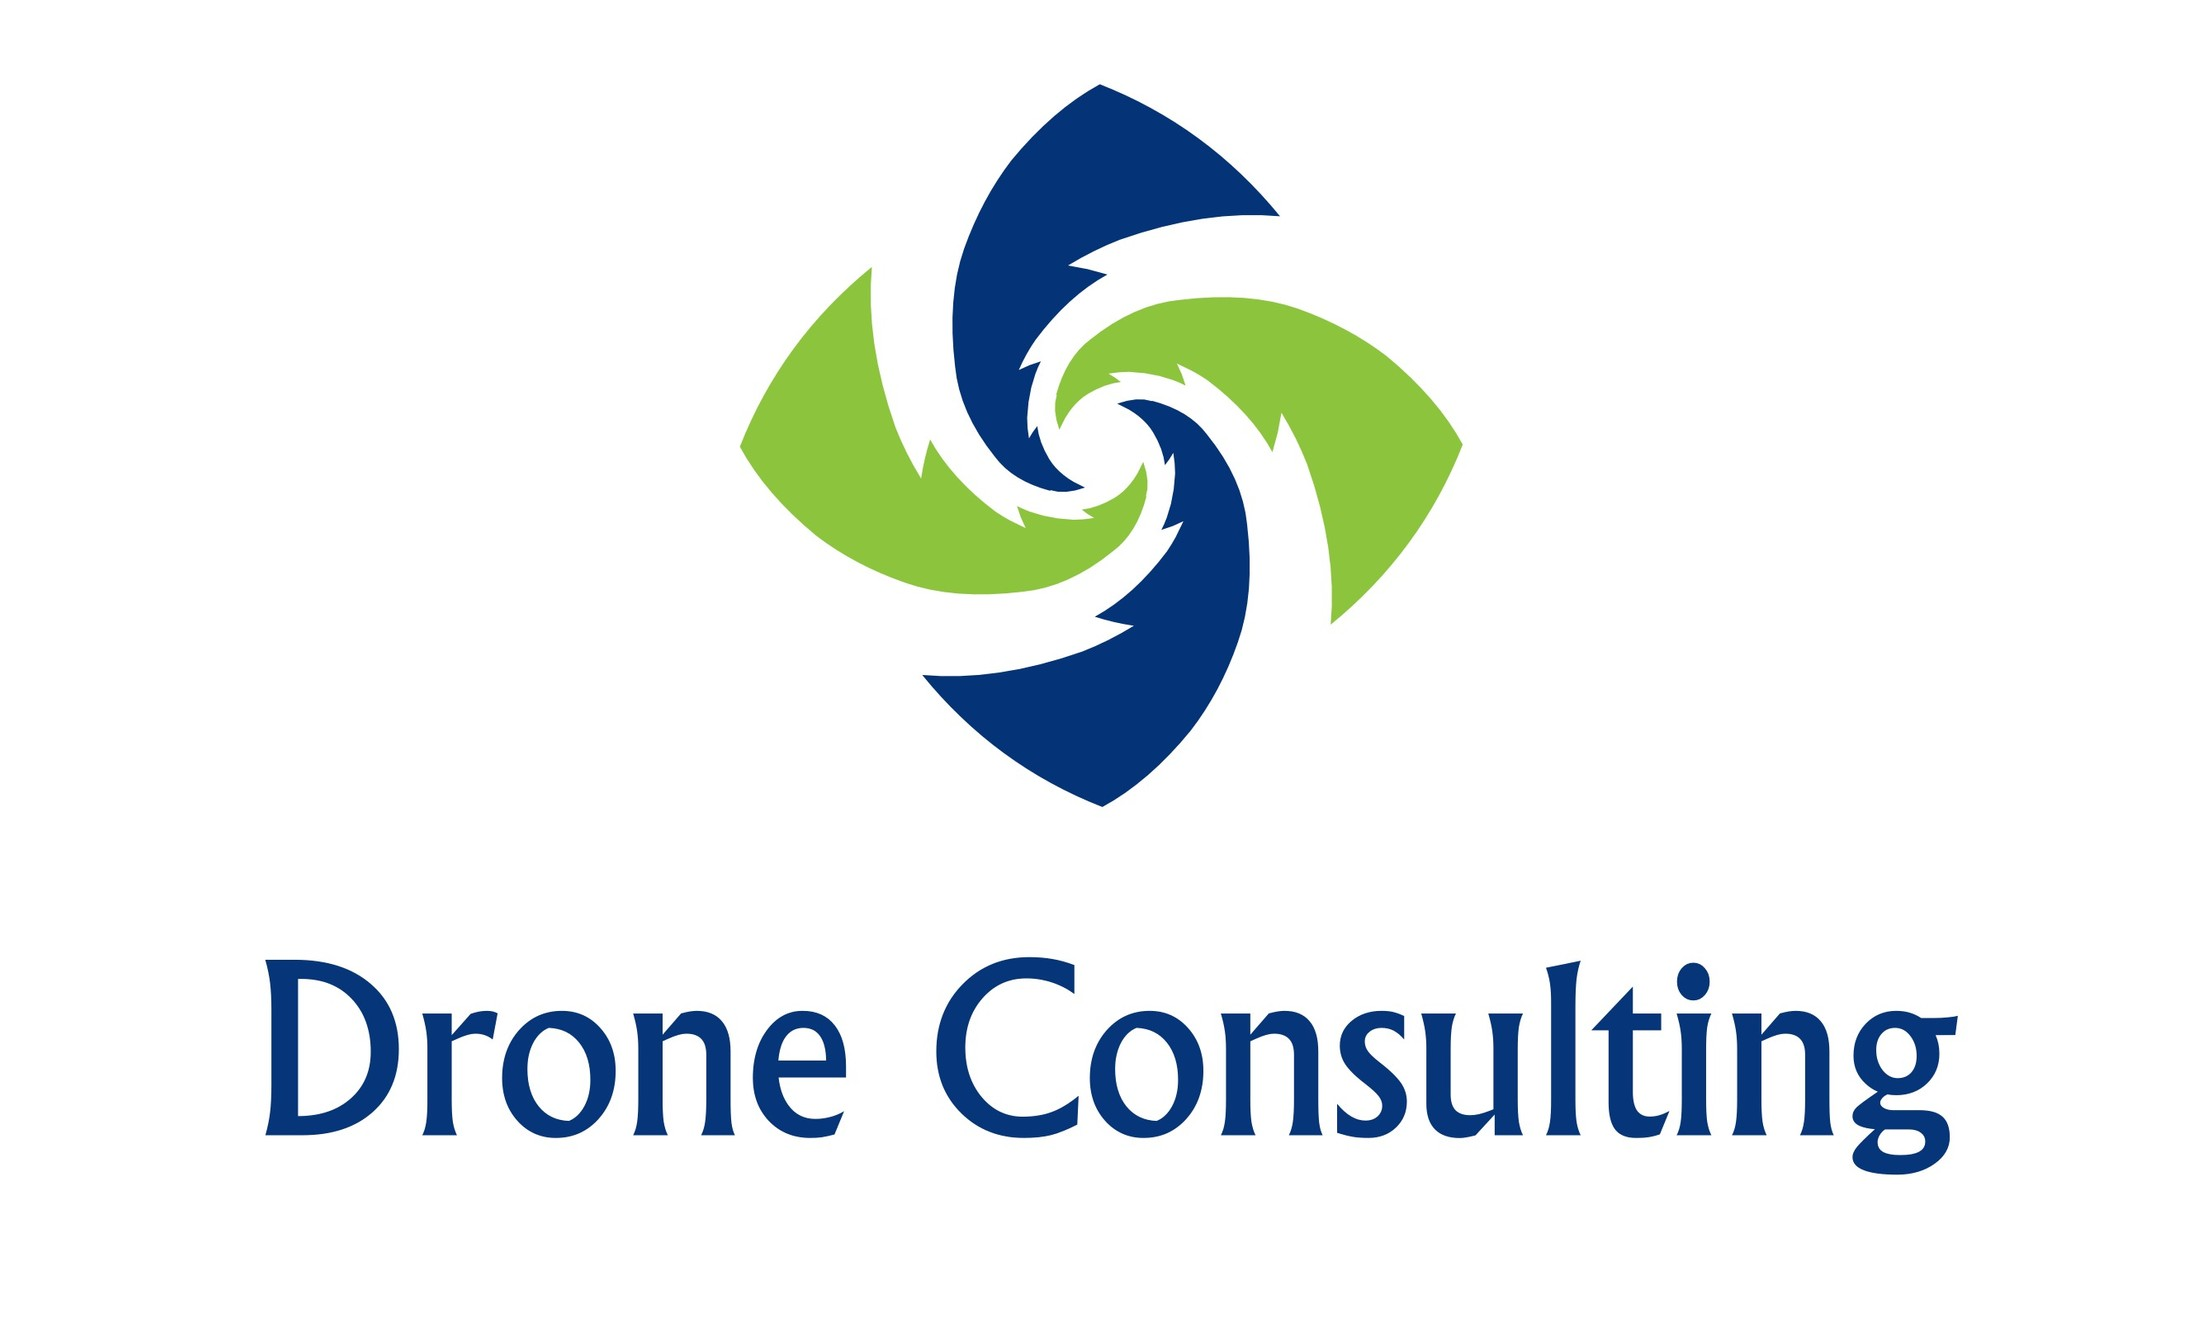 Image DRONE CONSULTING